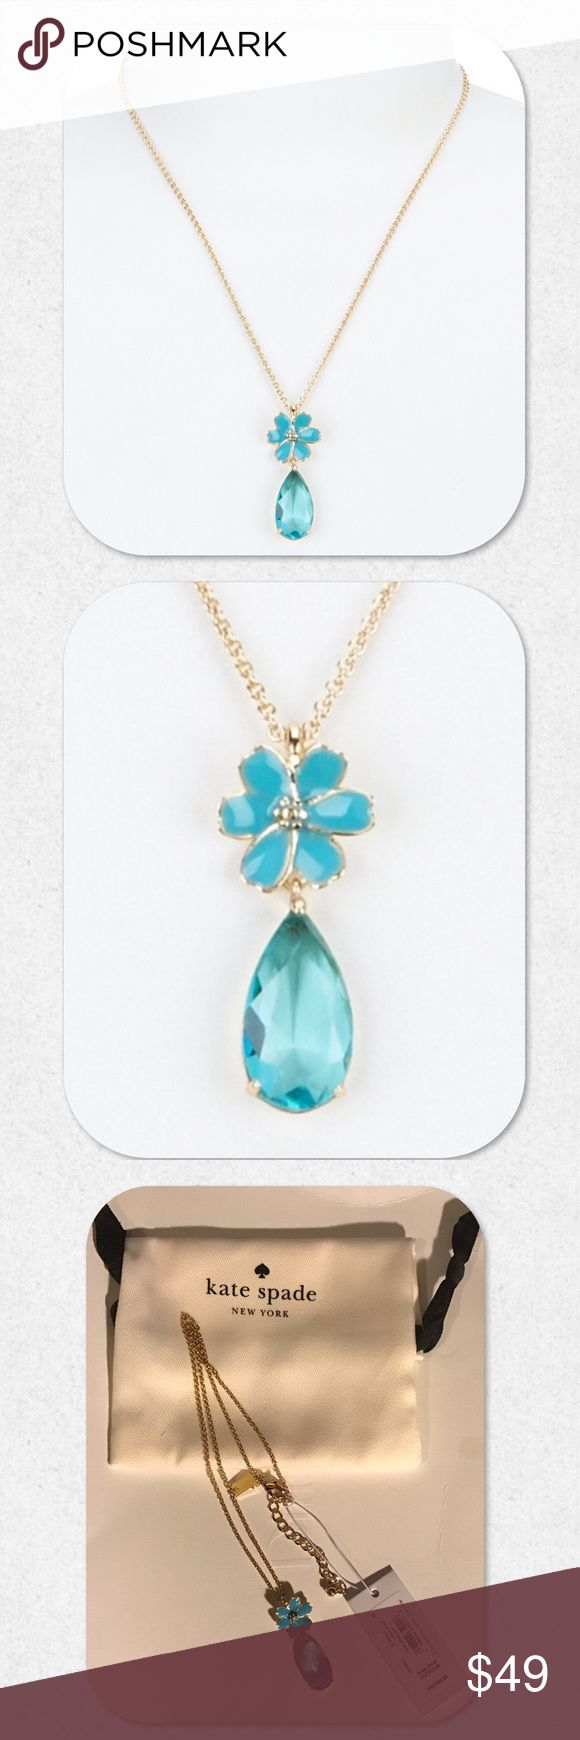 "kate spade Flower & Teardrop Pendant Necklace From the Here Comes the Sun collection by kate spade new york, this necklace features: * 12K gold-plated metal; glass * lobster clasp closure * approx. 17"" length. Dust bag included. NWT kate spade Jewelry Necklaces"